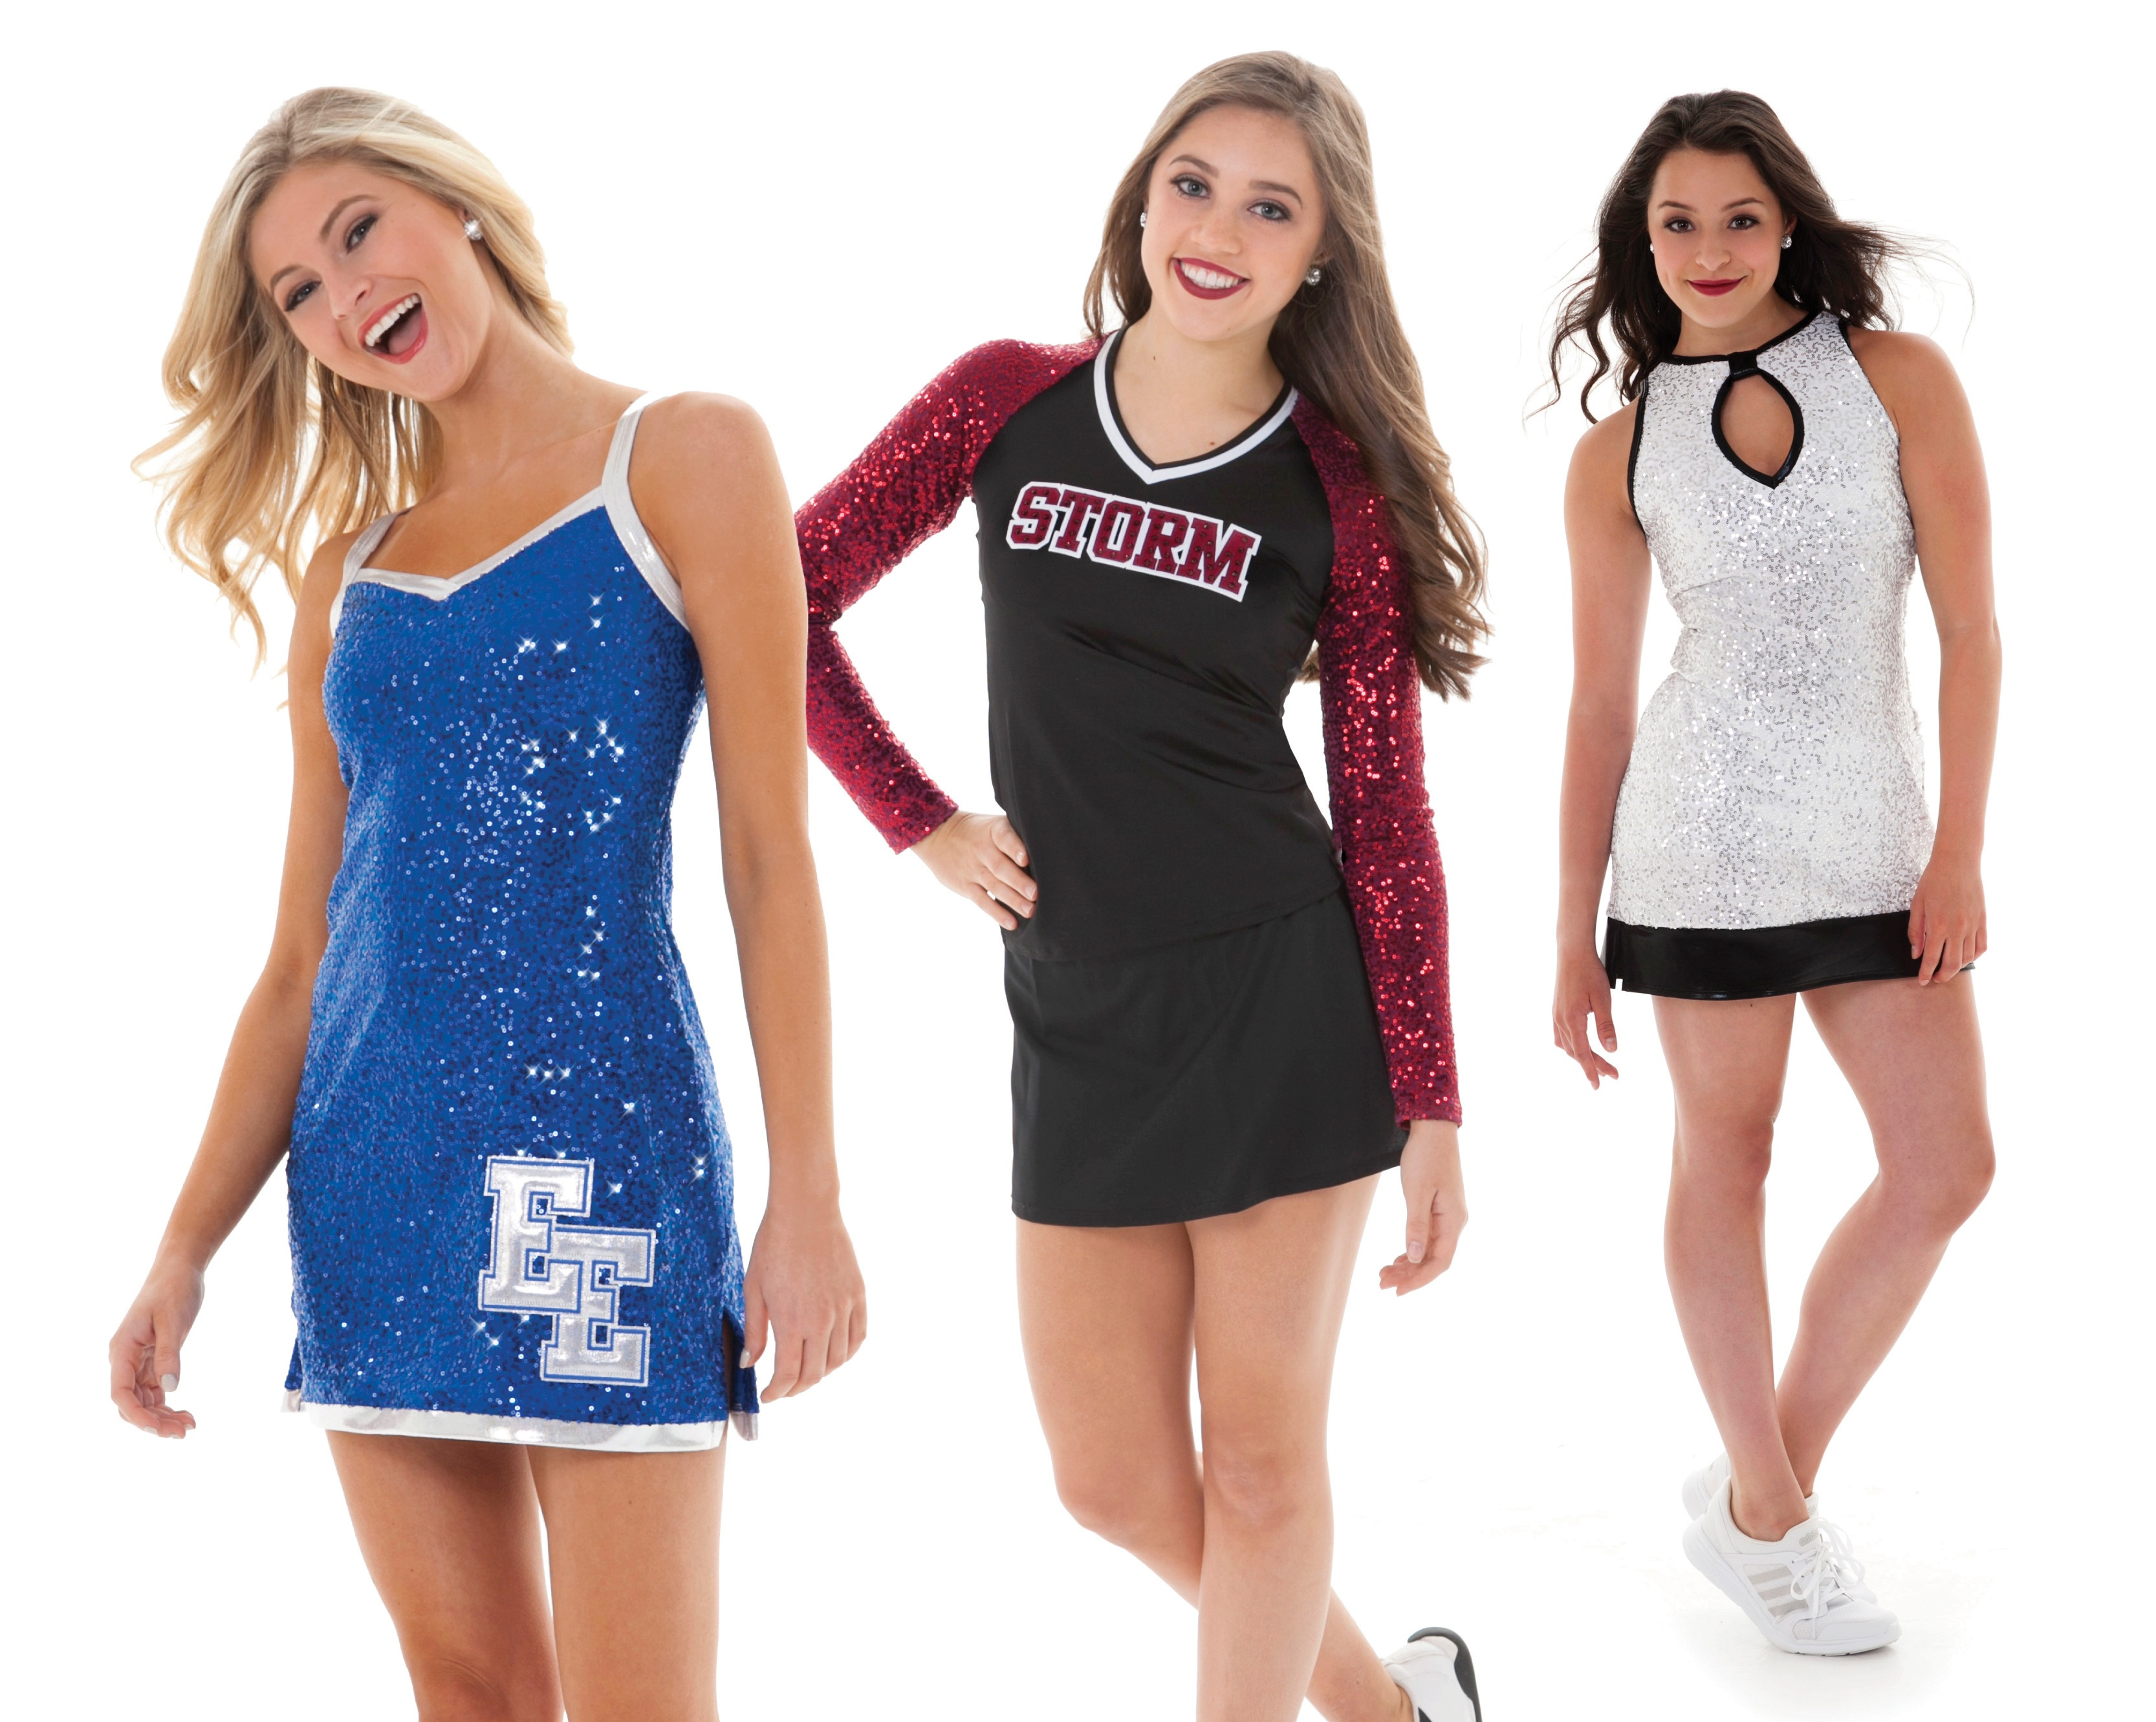 cheer and pom uniform trends: bling